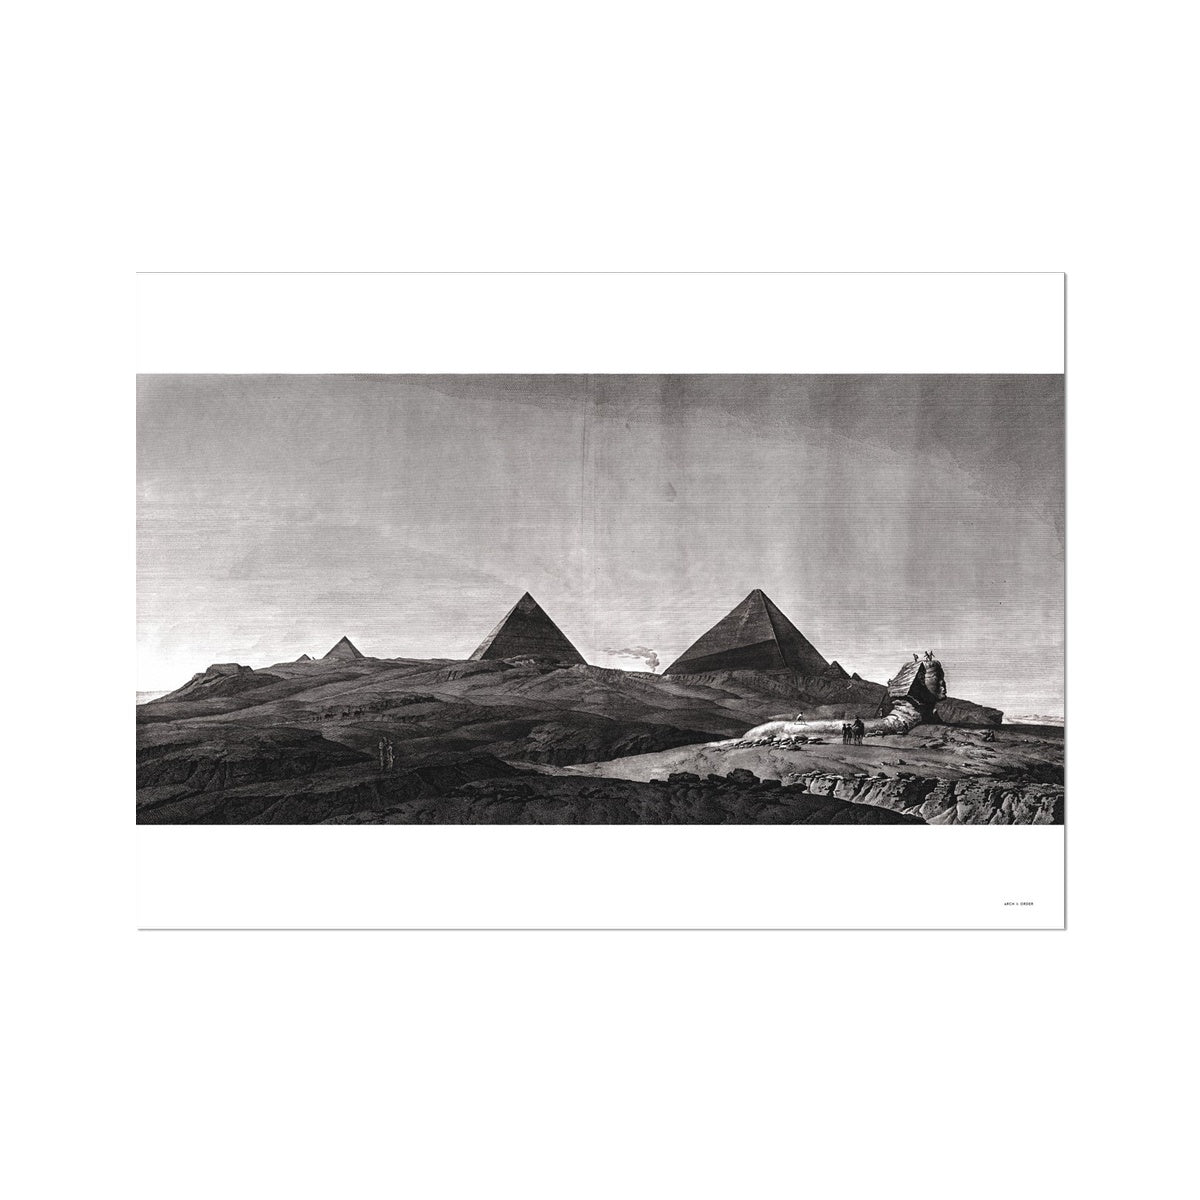 View of the Pyramids of Giza and Sphinx - Memphis Egypt -  Etching Paper Print